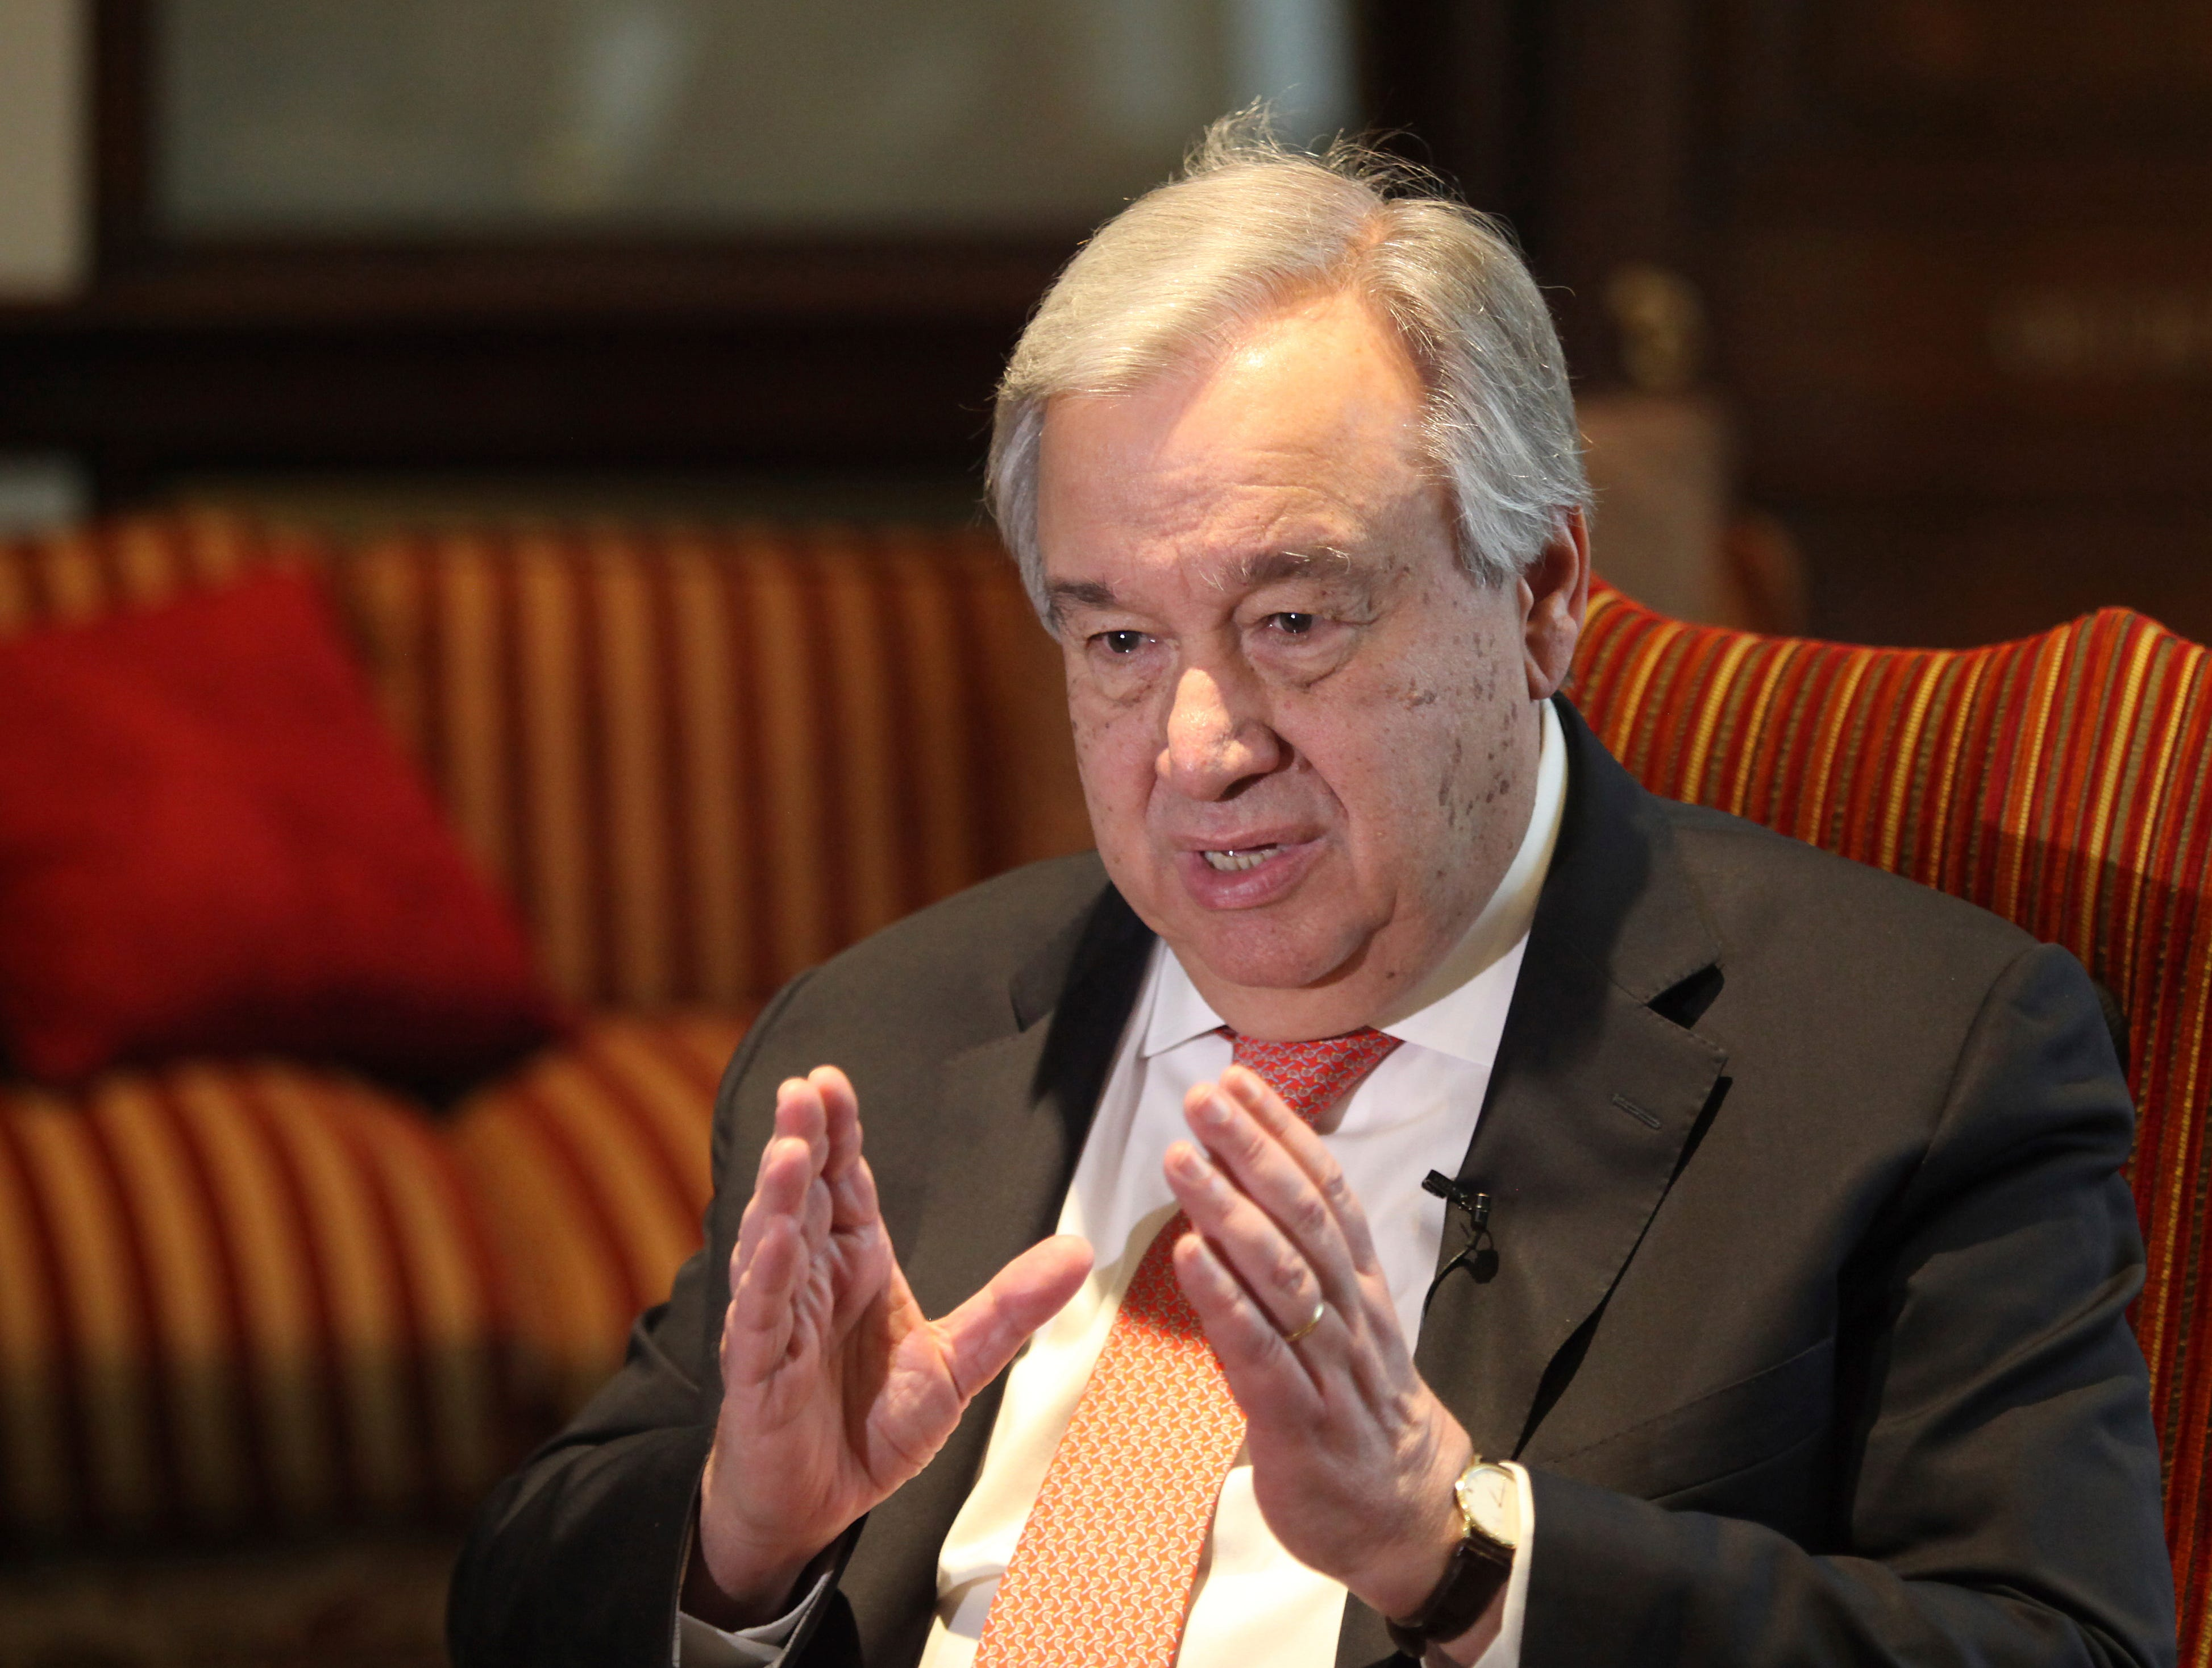 UN chief says new virus poses enormous risks